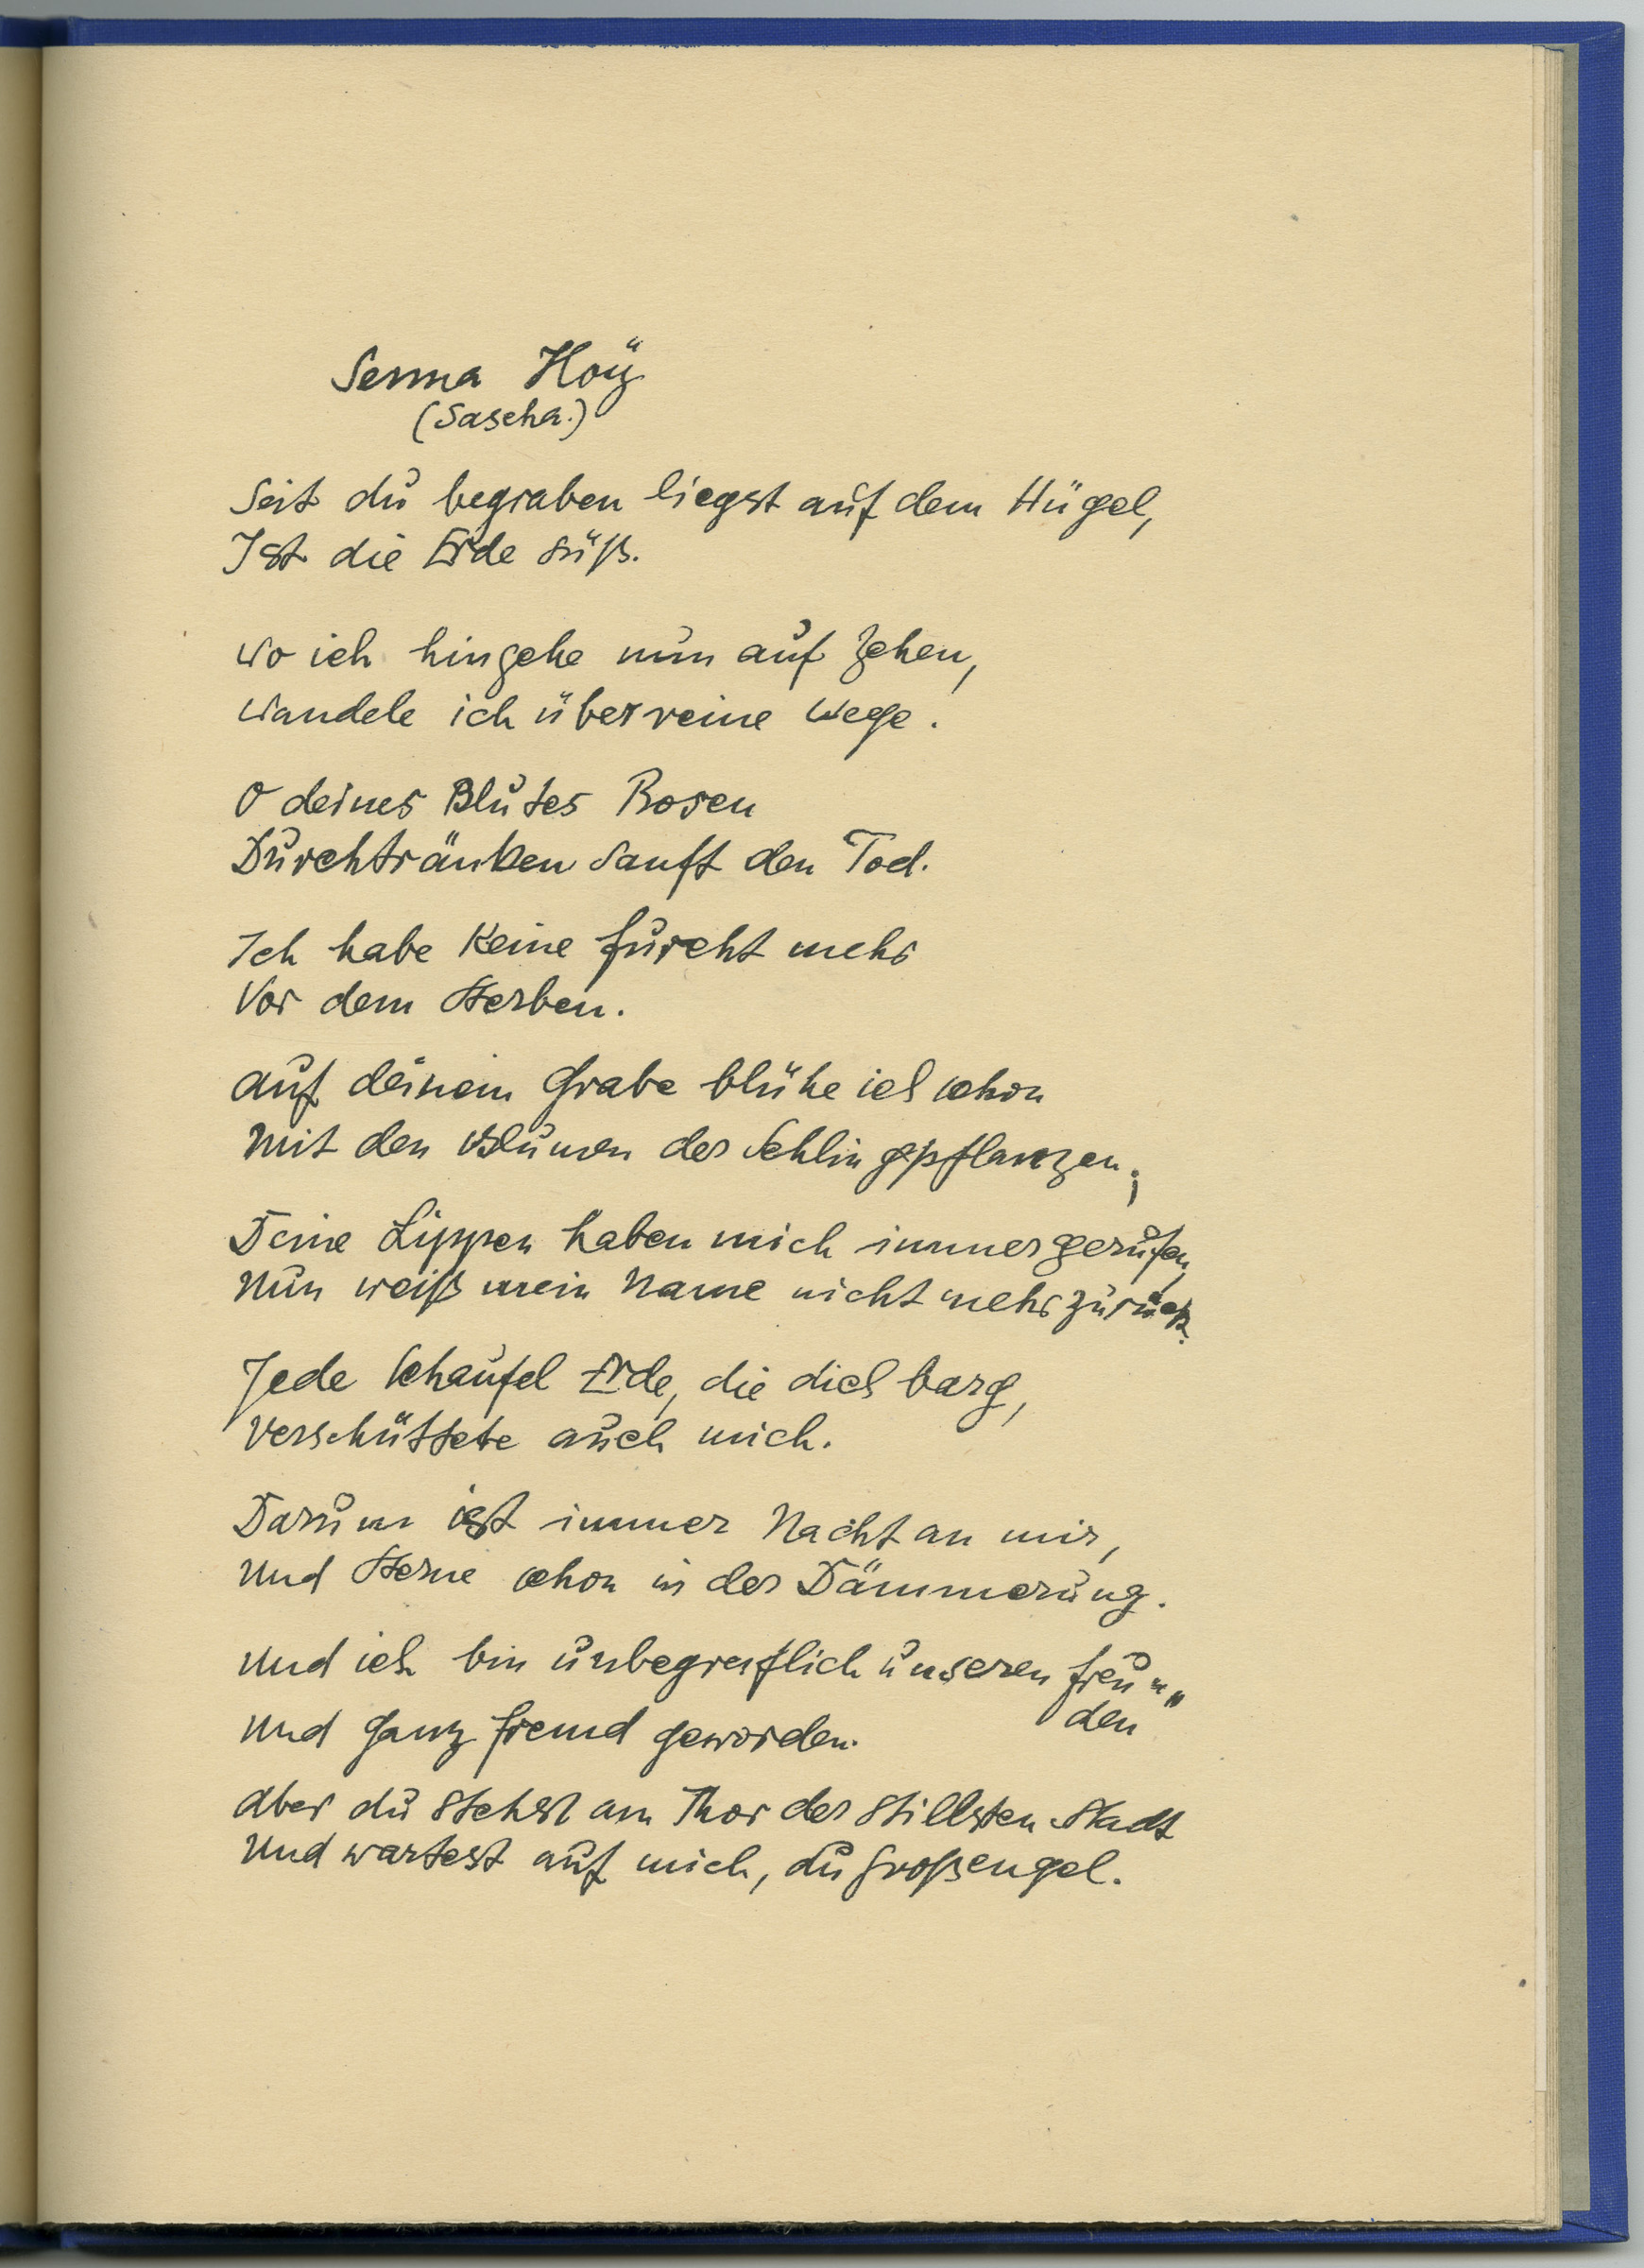 »The Bond of Wild Jews« from Thebes. Poems and Lithographs (poem)